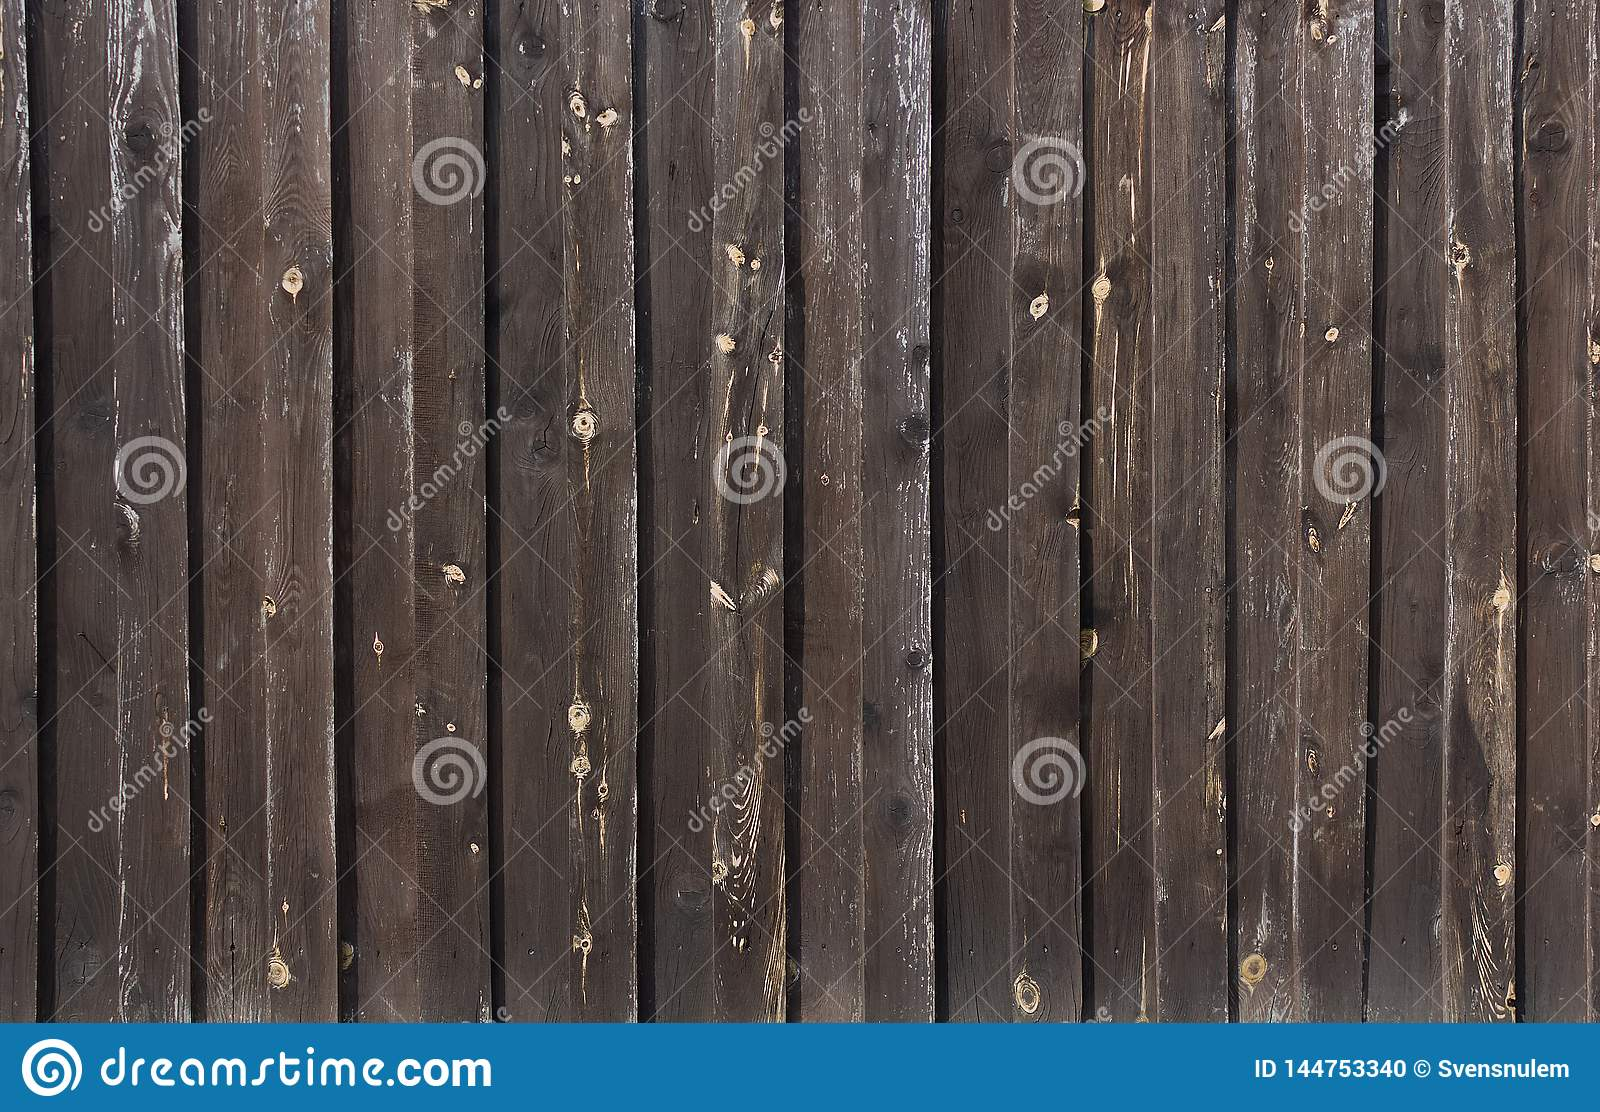 Textures of varnished wood plank wall closeup for background